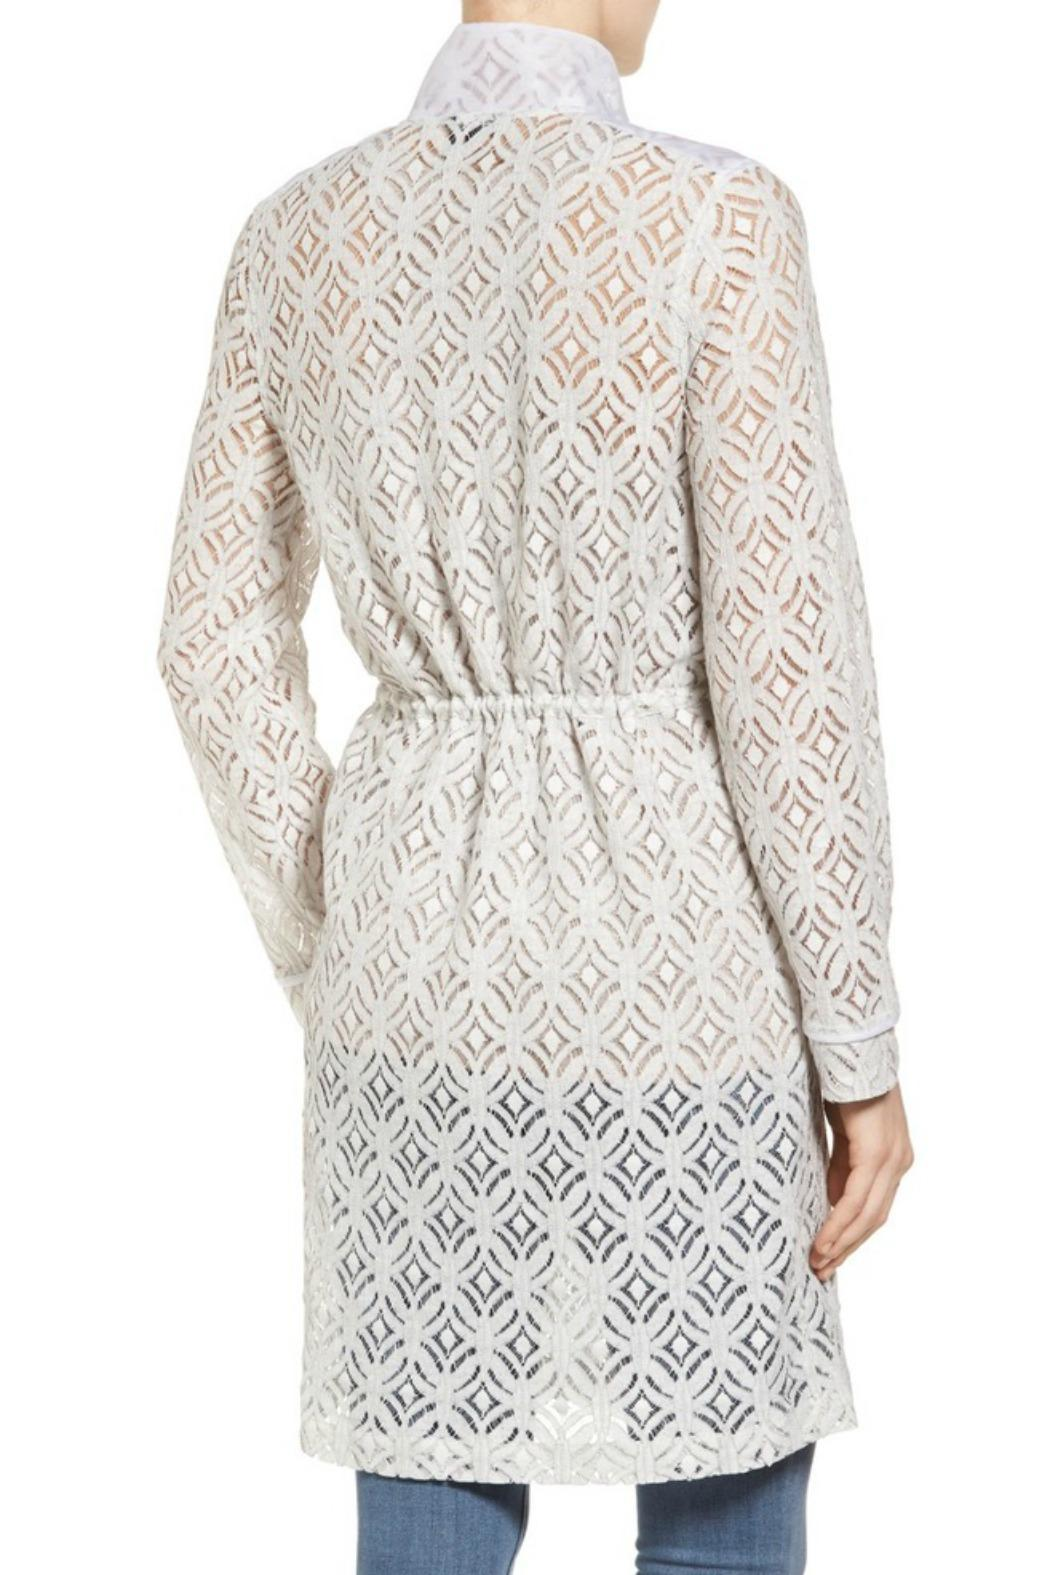 Nic + Zoe Lush Lace Trench - Front Full Image